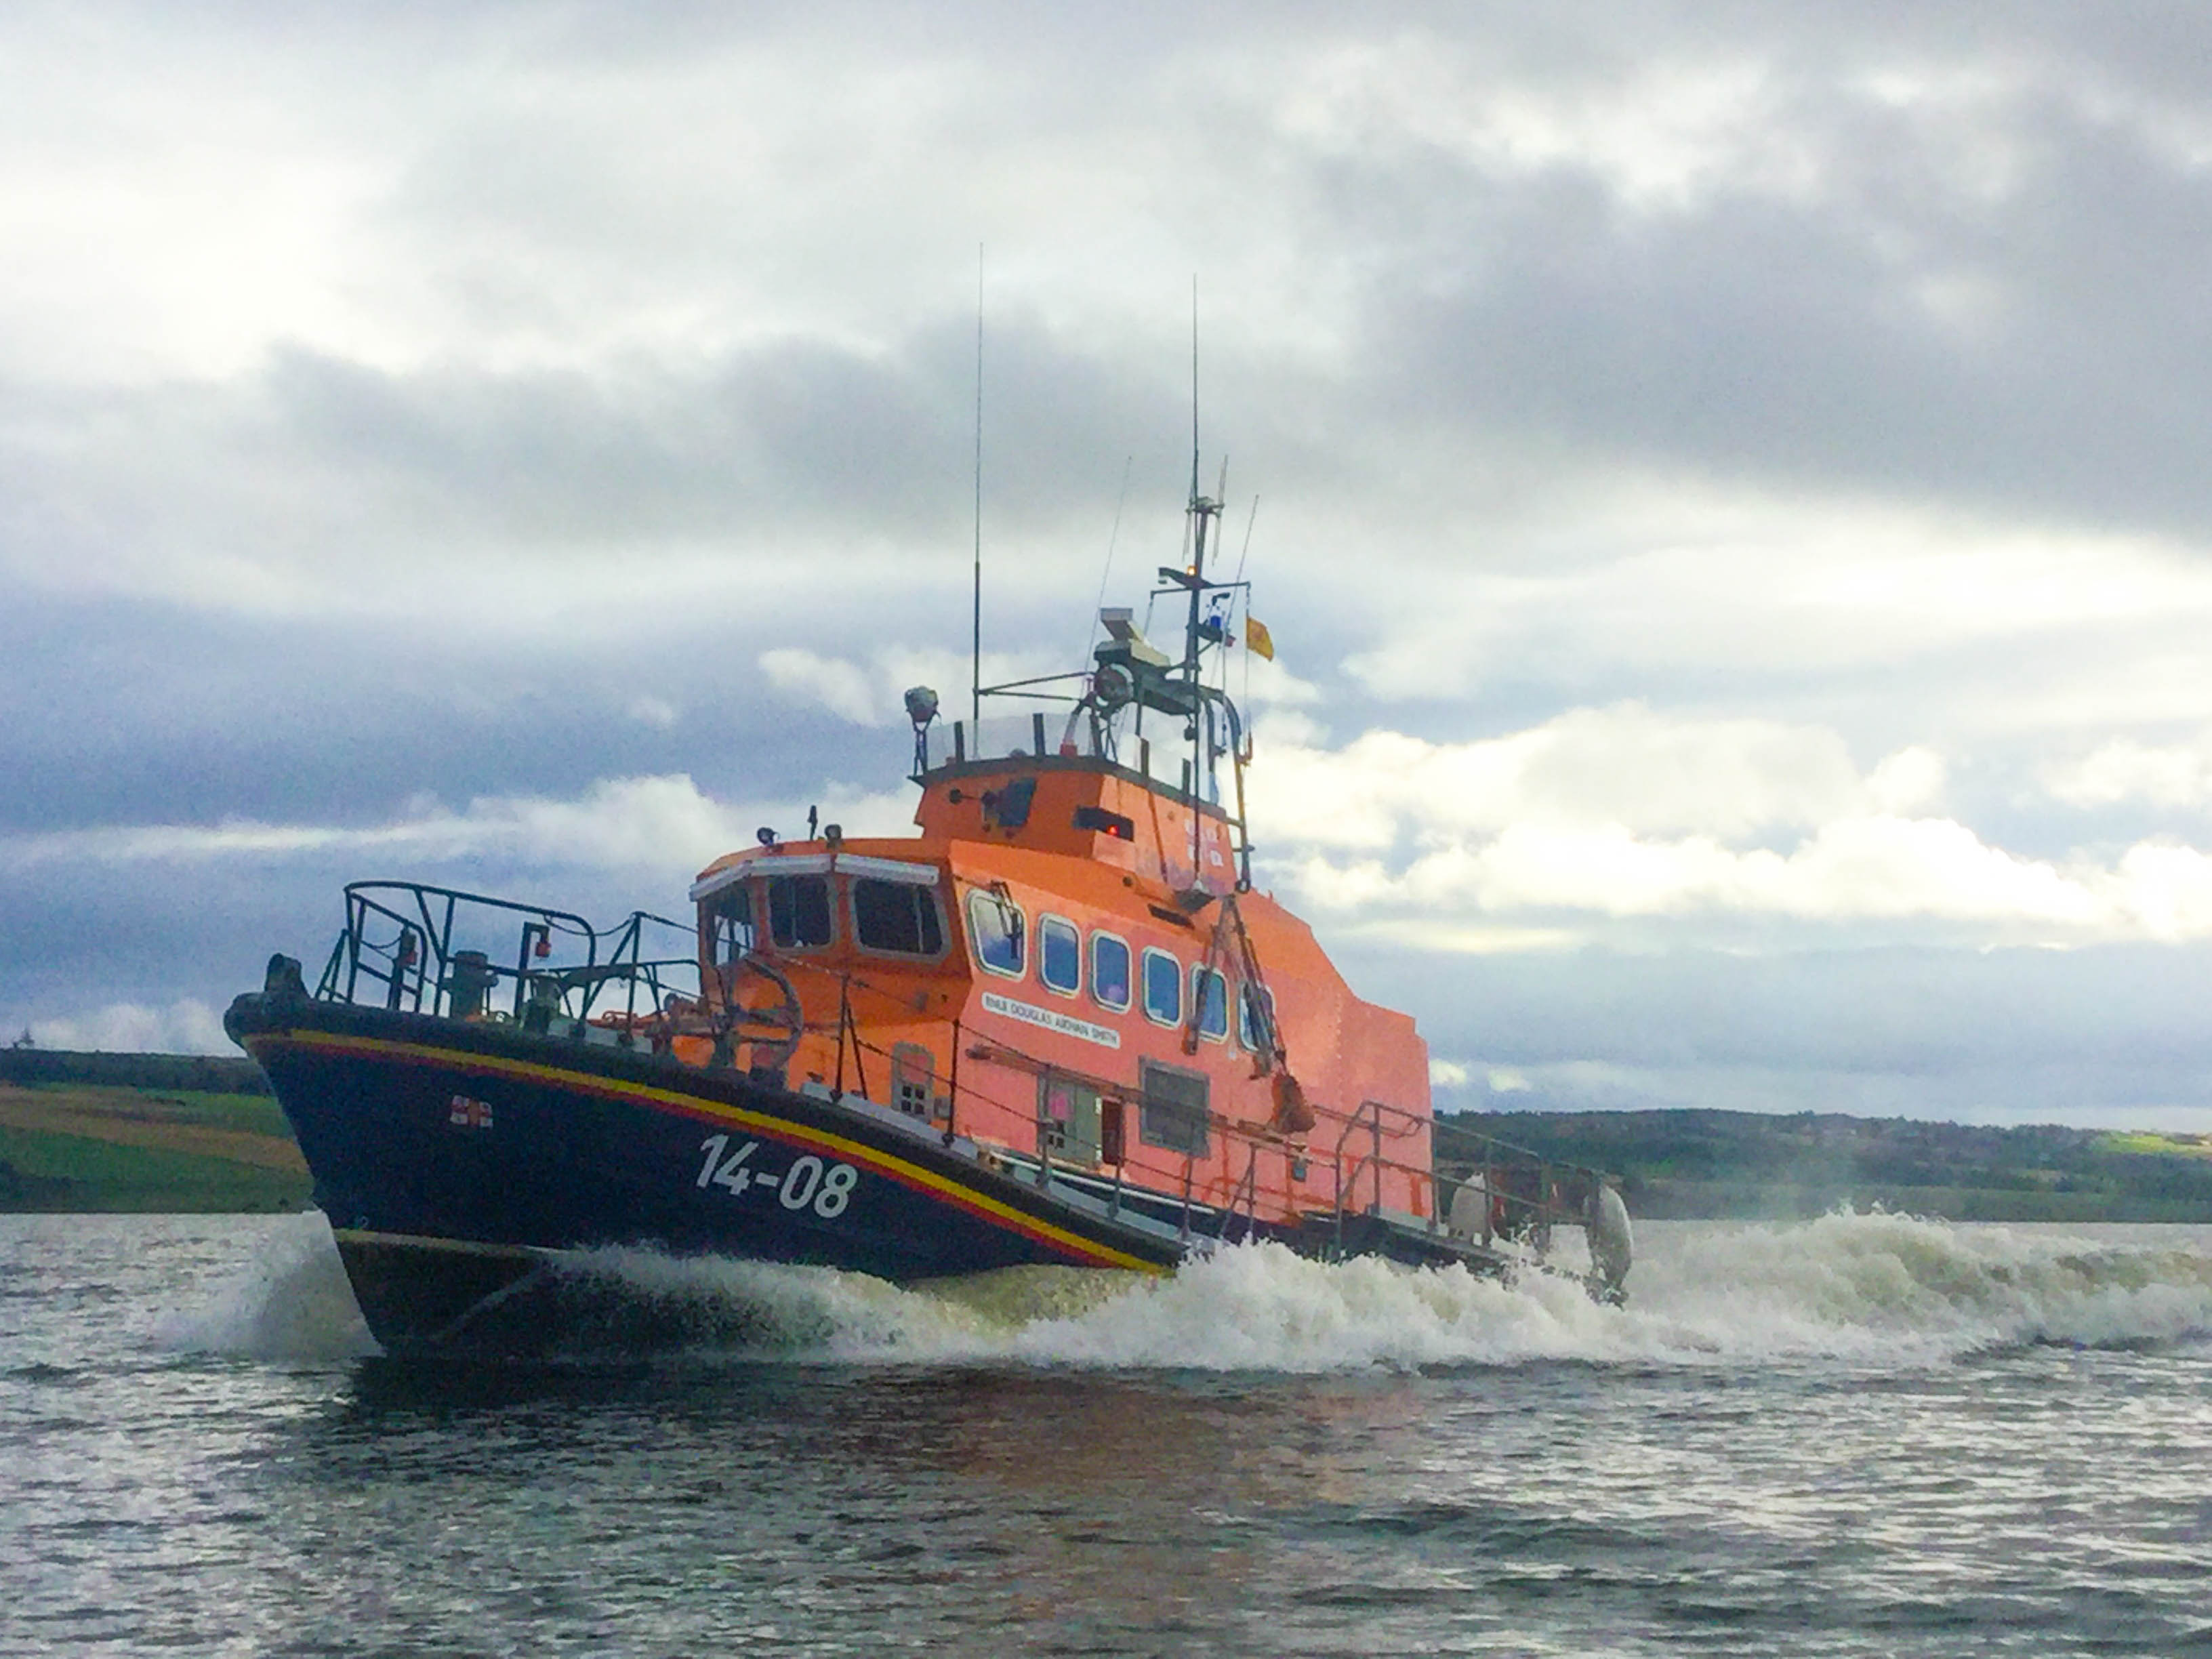 Invergordon Lifeboat underway